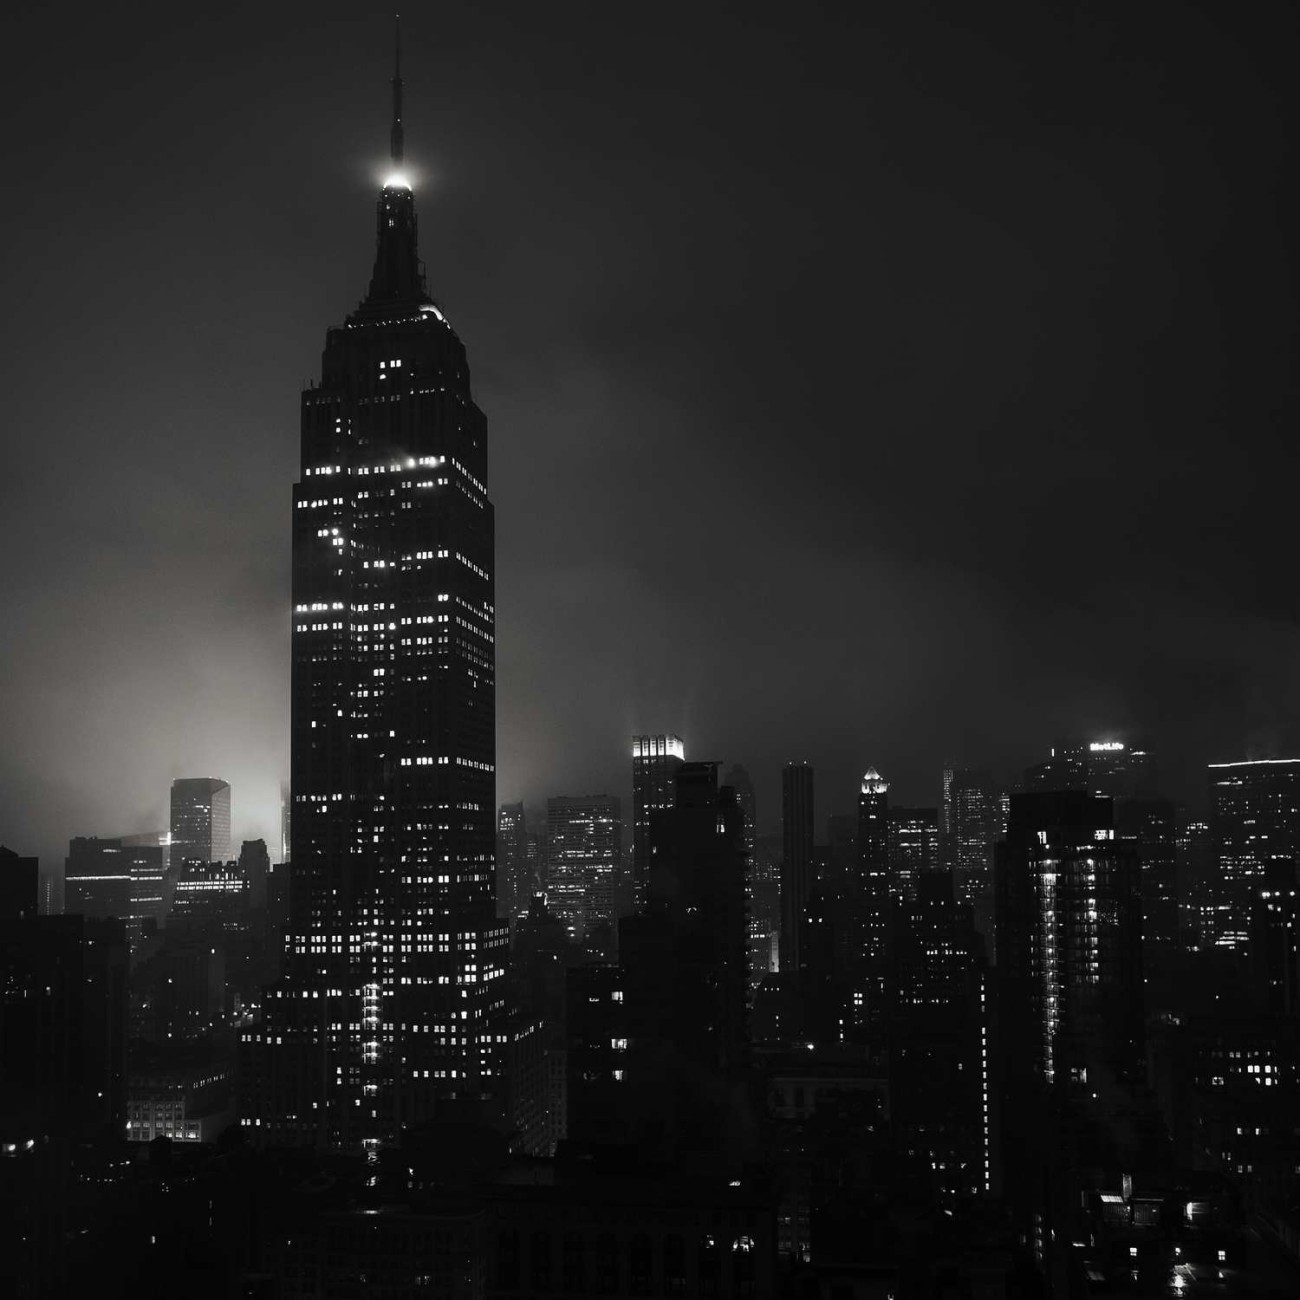 Pre-dawn mist, New York, 2014